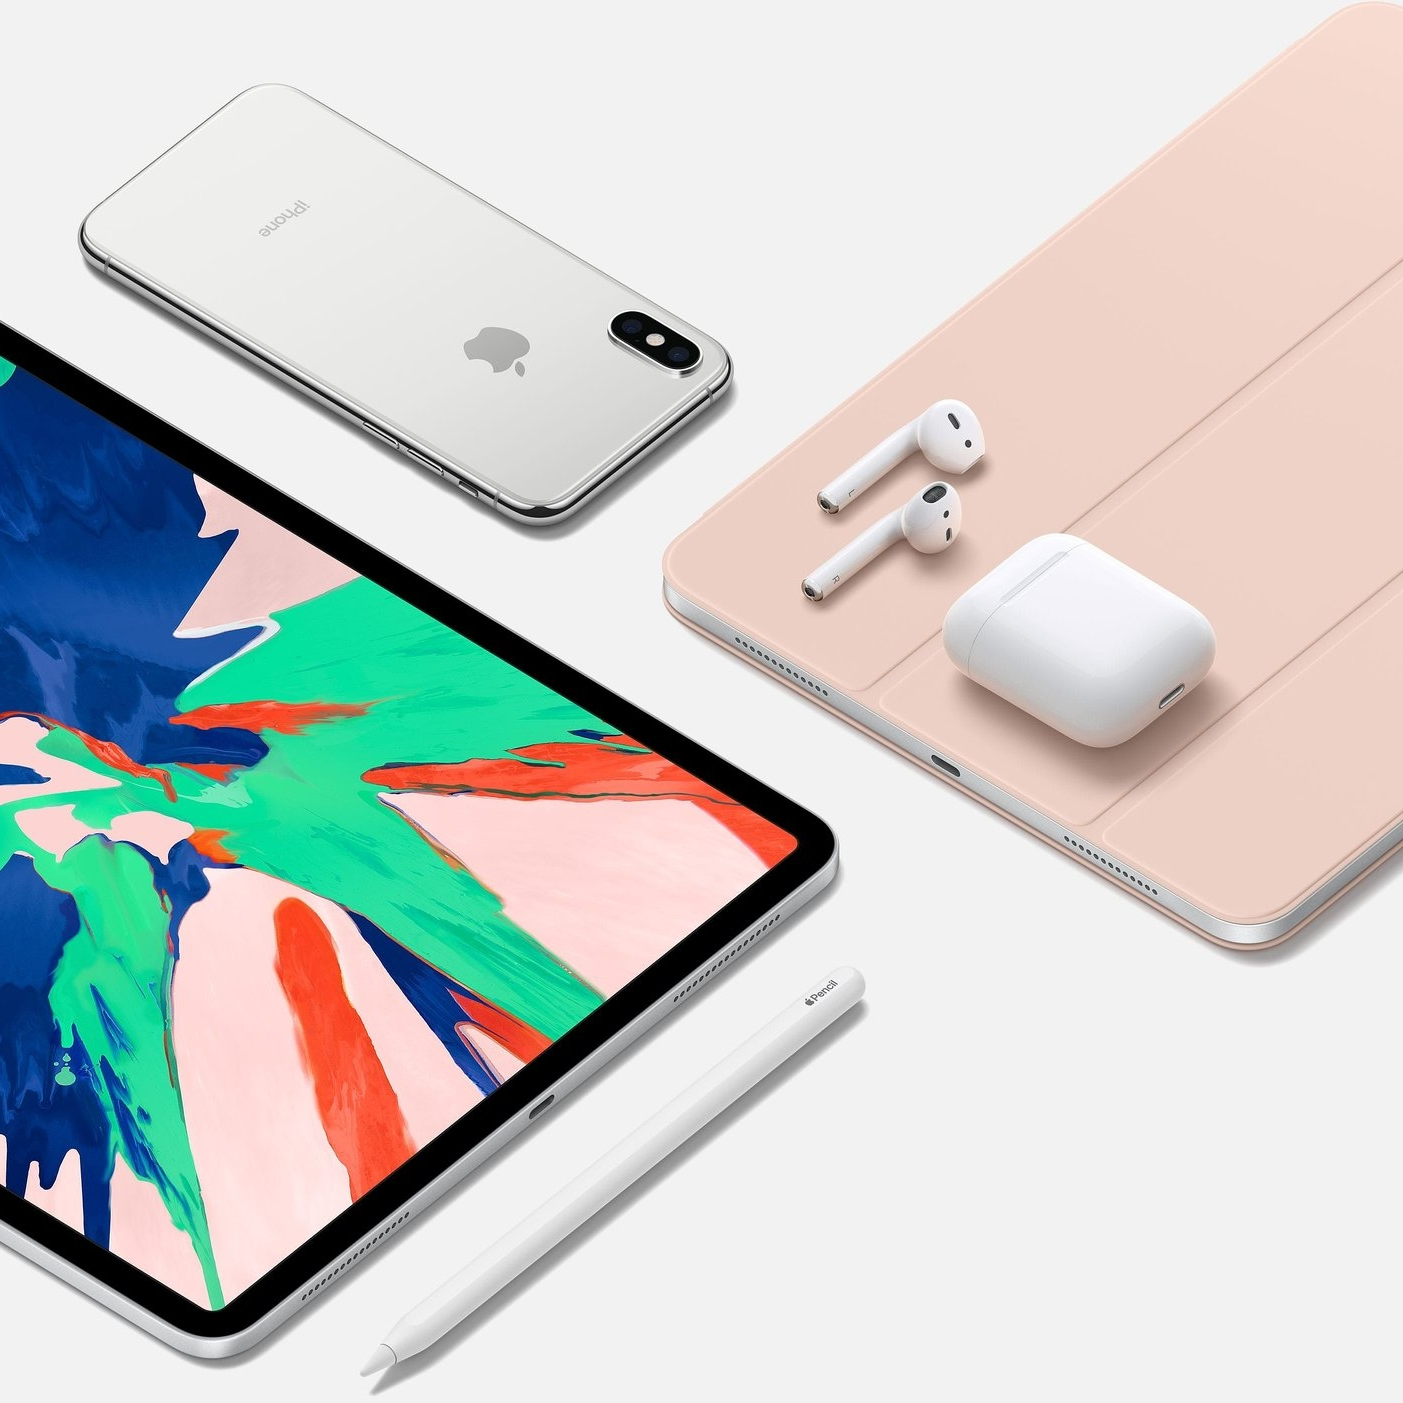 apple-products-section3-one-holiday-201811.jpeg